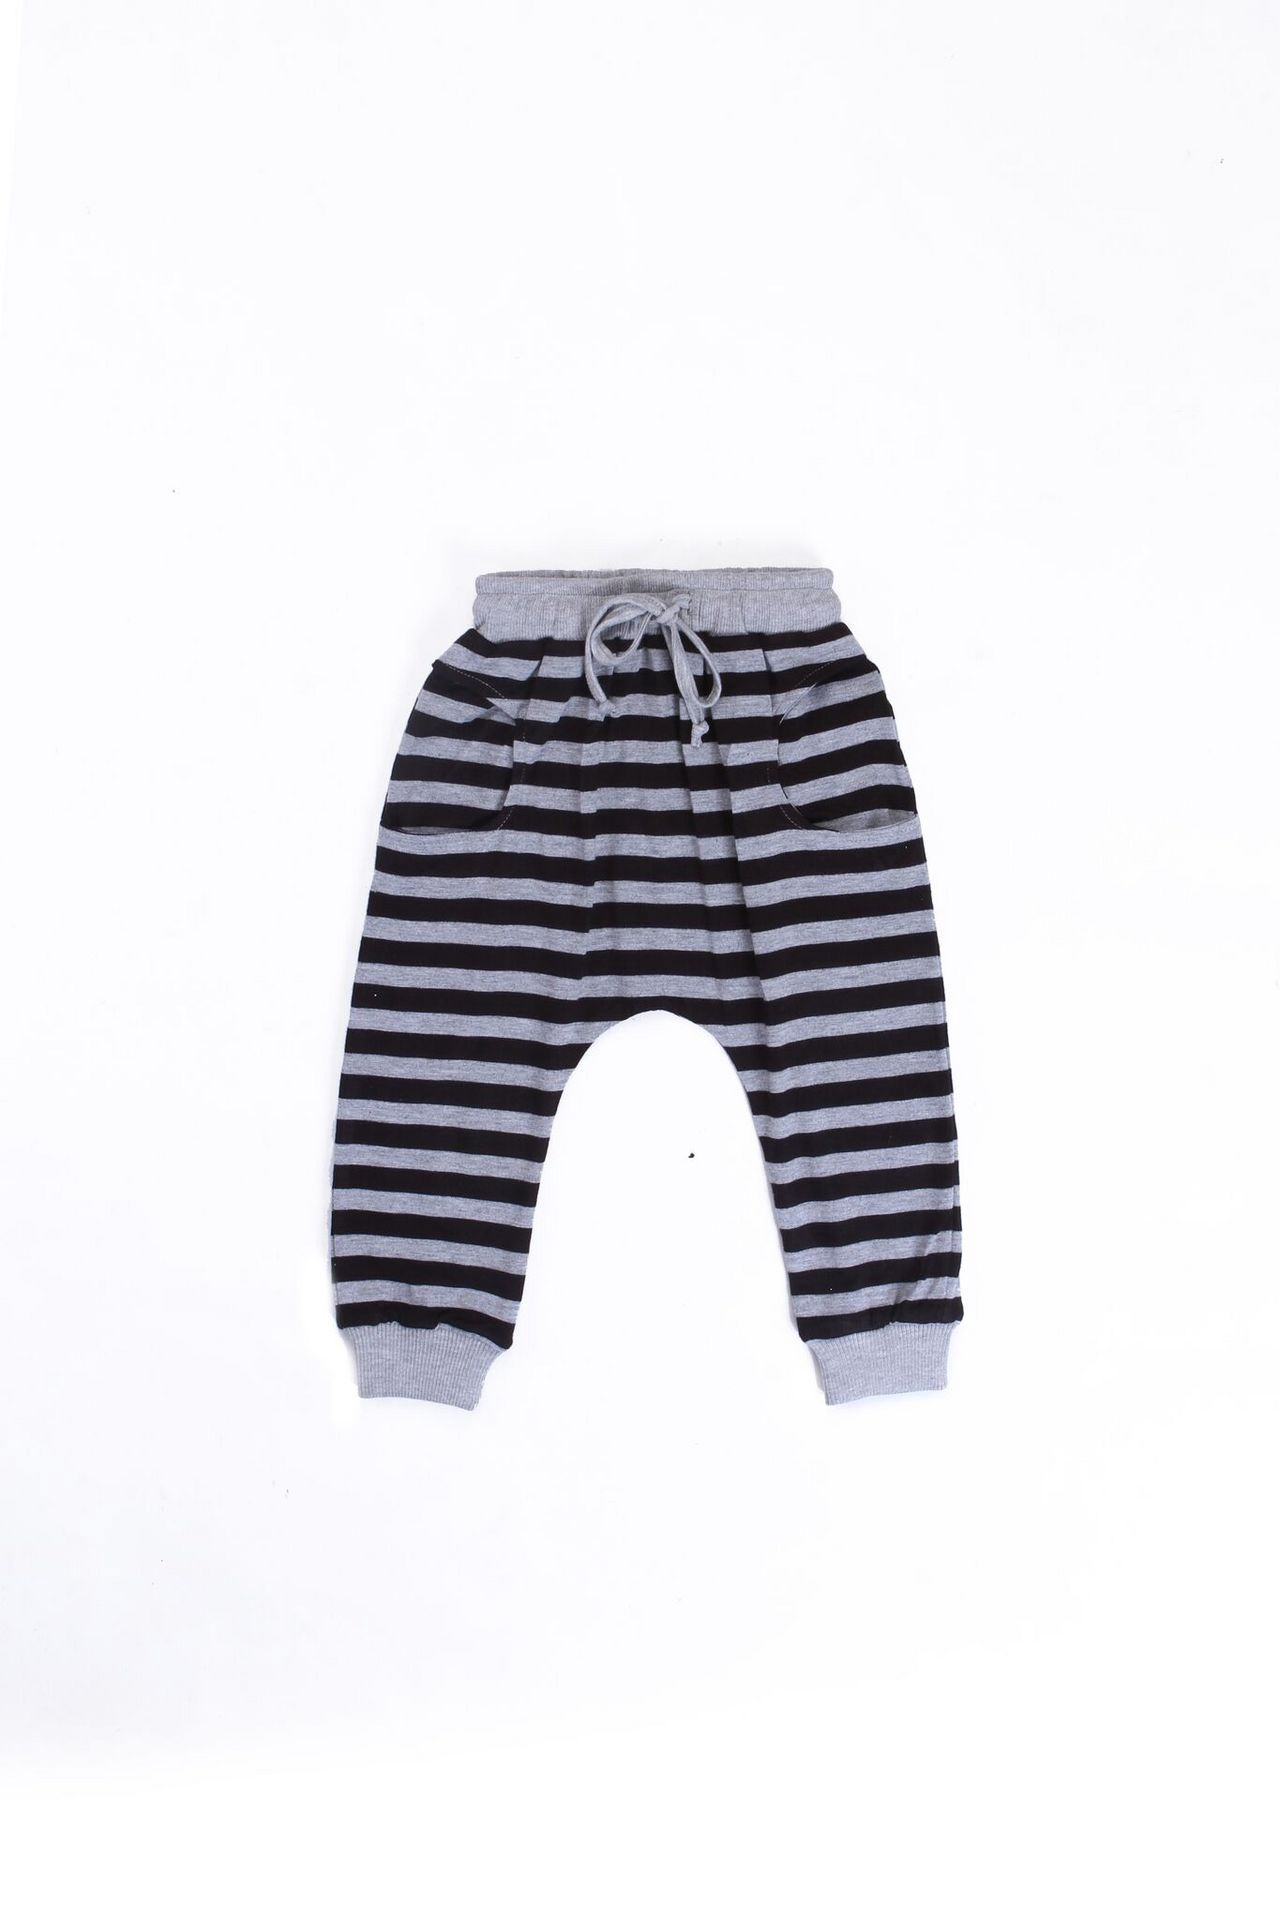 Alex and Ant Stripe Pant Grey